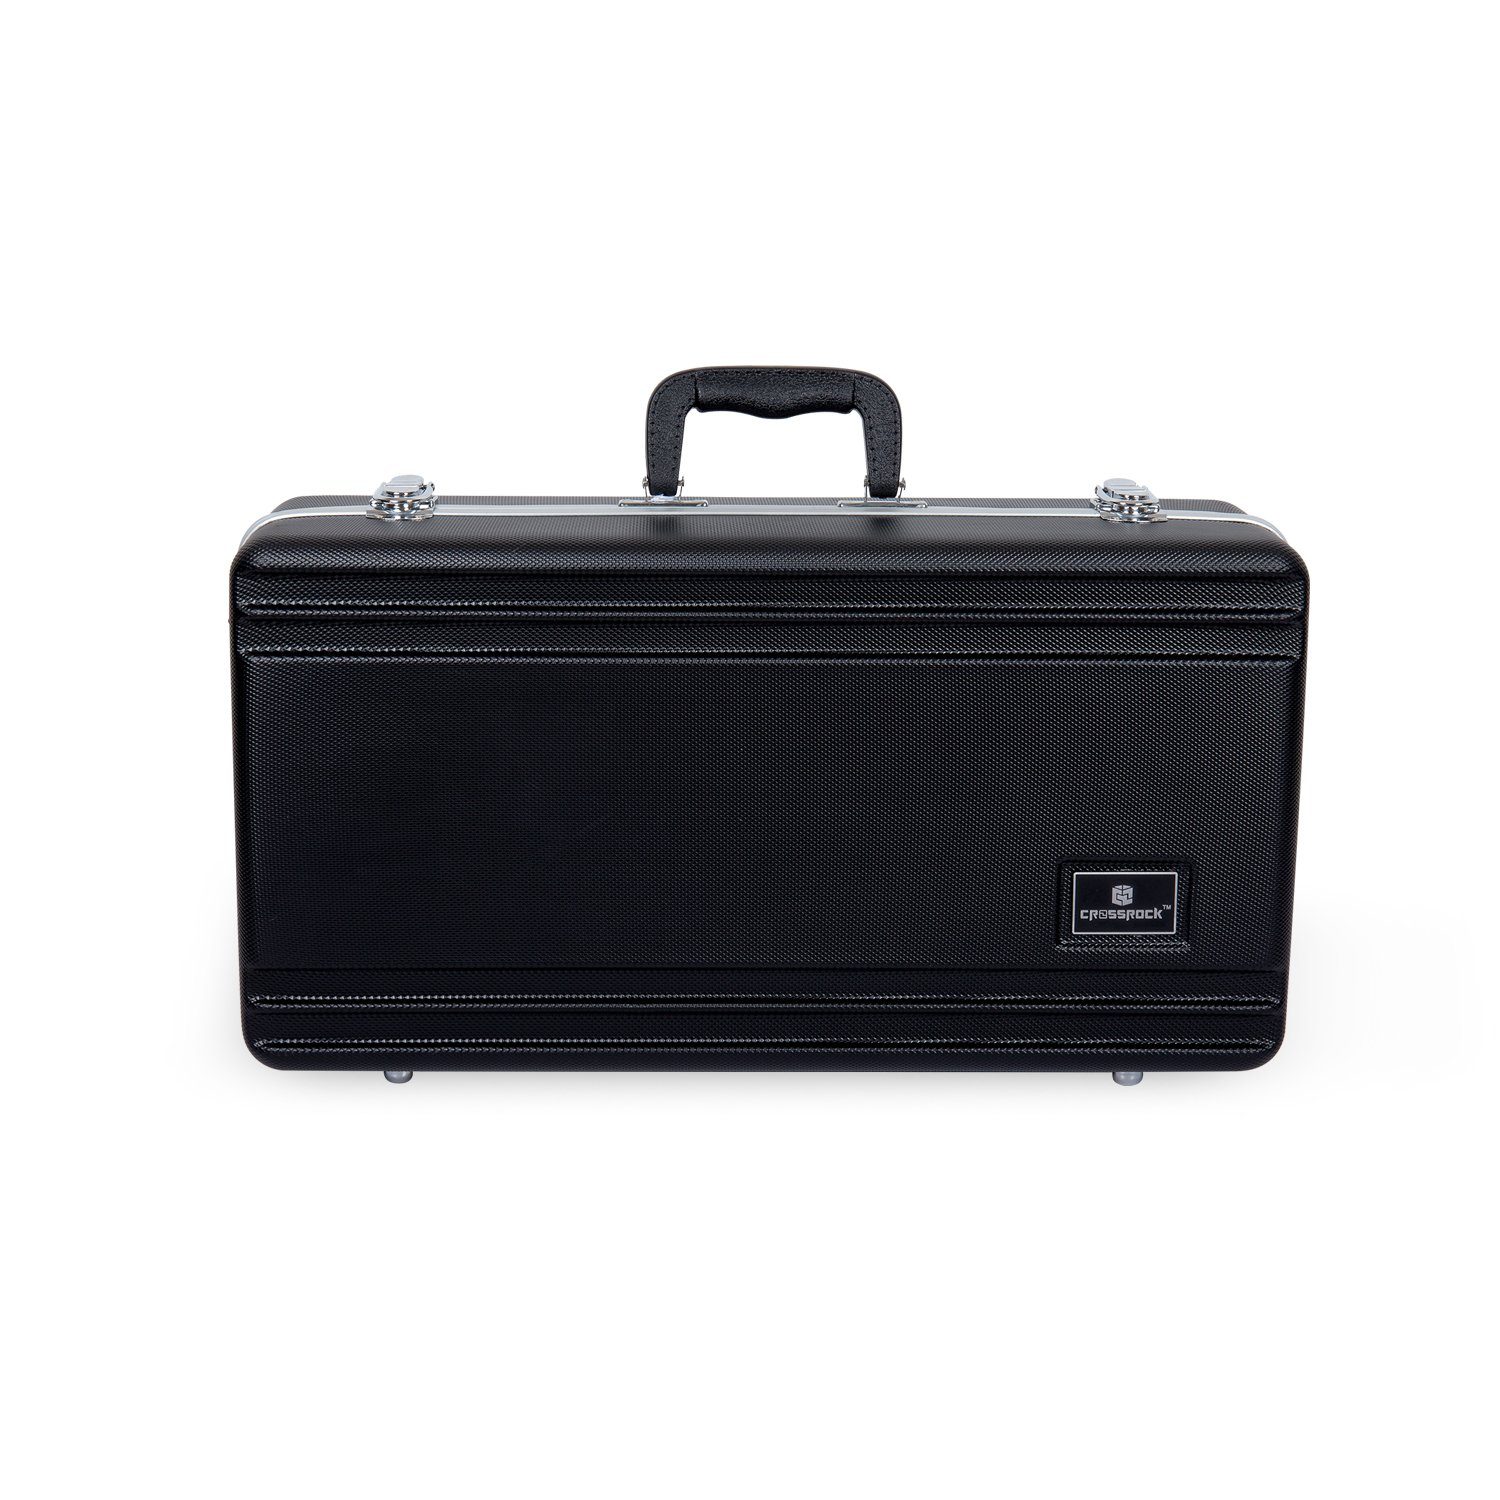 Crossrock CRA860TRBK Trumpet, Rectangular ABS Molded Hard Shell Case with Padded Strap in Black